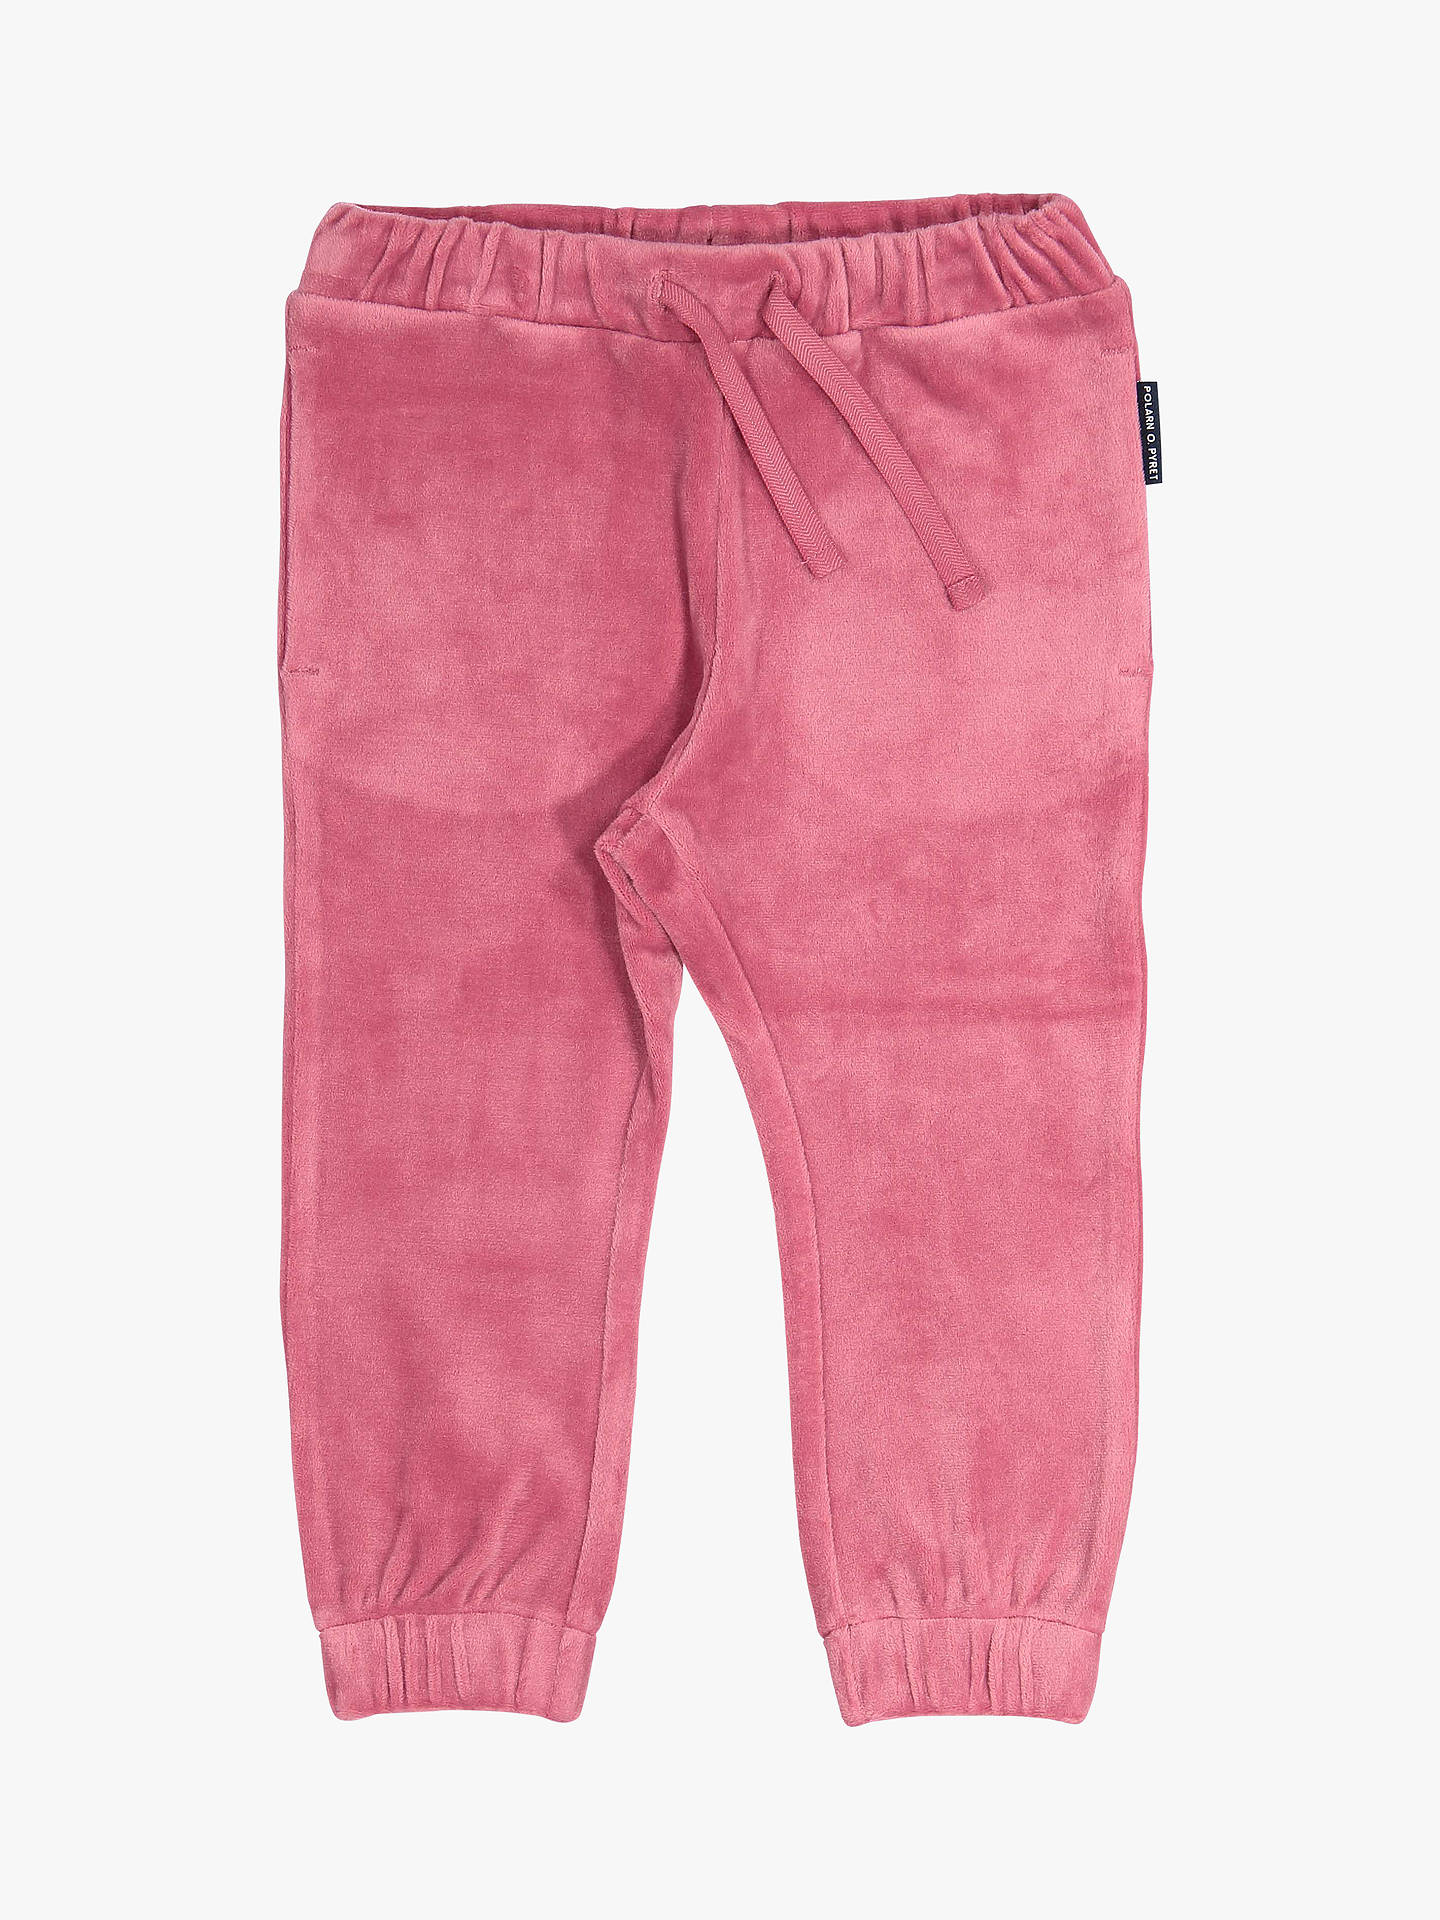 BuyPolarn O. Pyret Baby Velour Trousers, Pink, 6-9 months Online at johnlewis.com